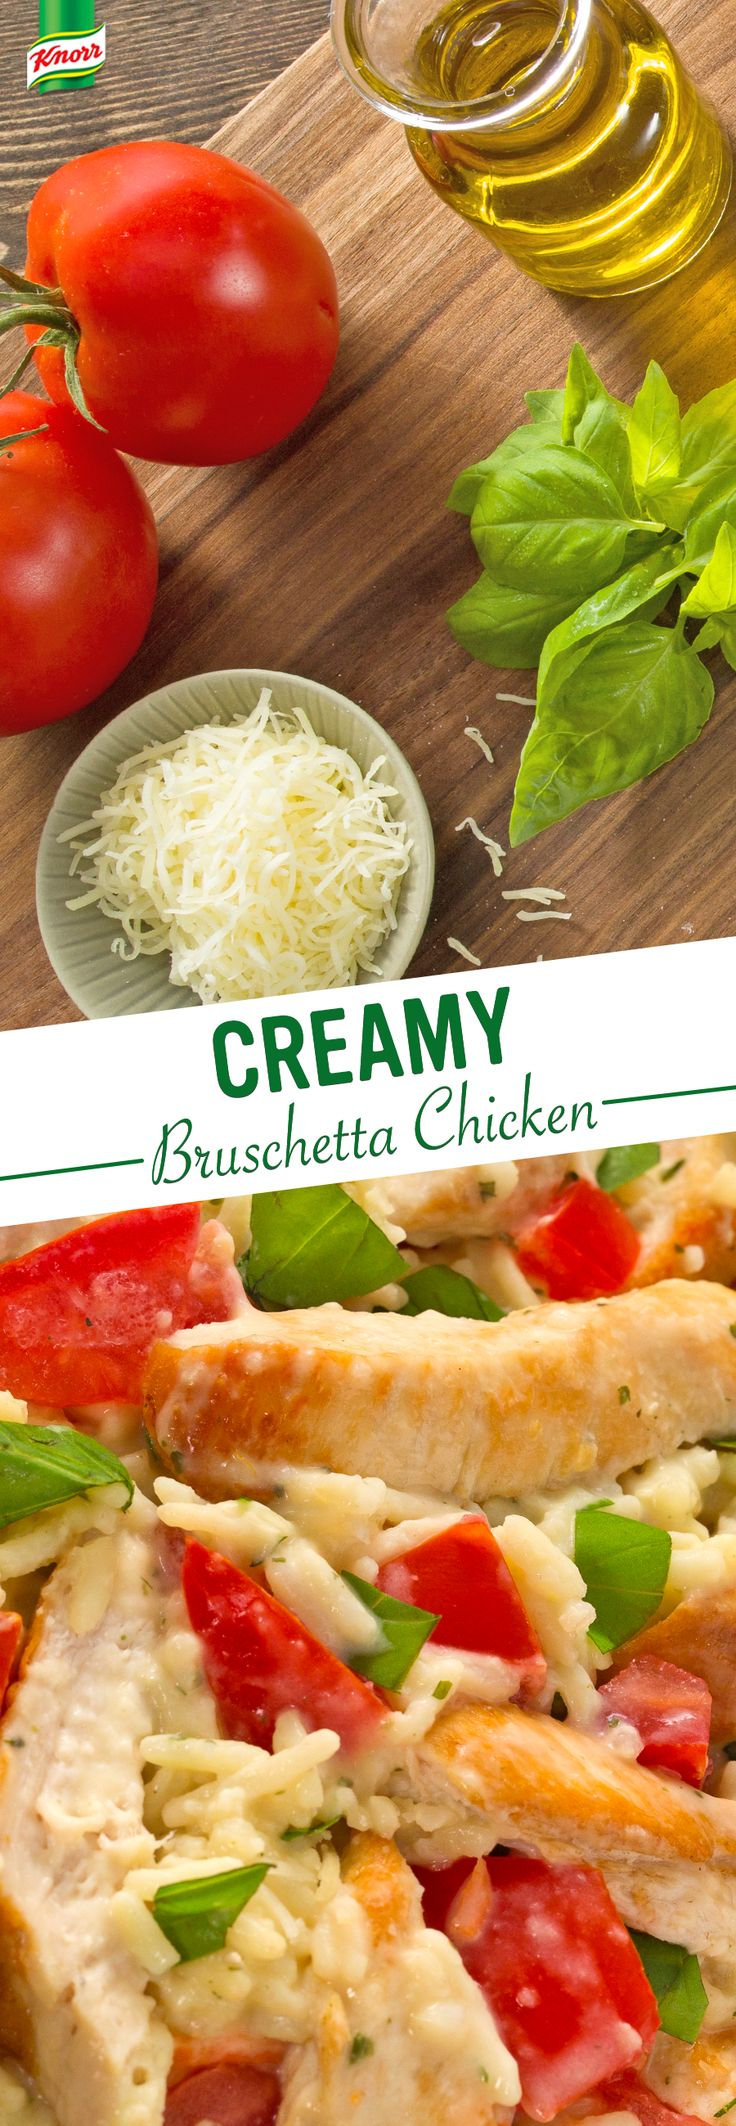 Have you tried Knorr's recipe for easy, homemade Creamy Bruschetta Chicken? Chicken, tomatoes, rice, mozzarella, and basil combine for a simple, flavorful family dinner.